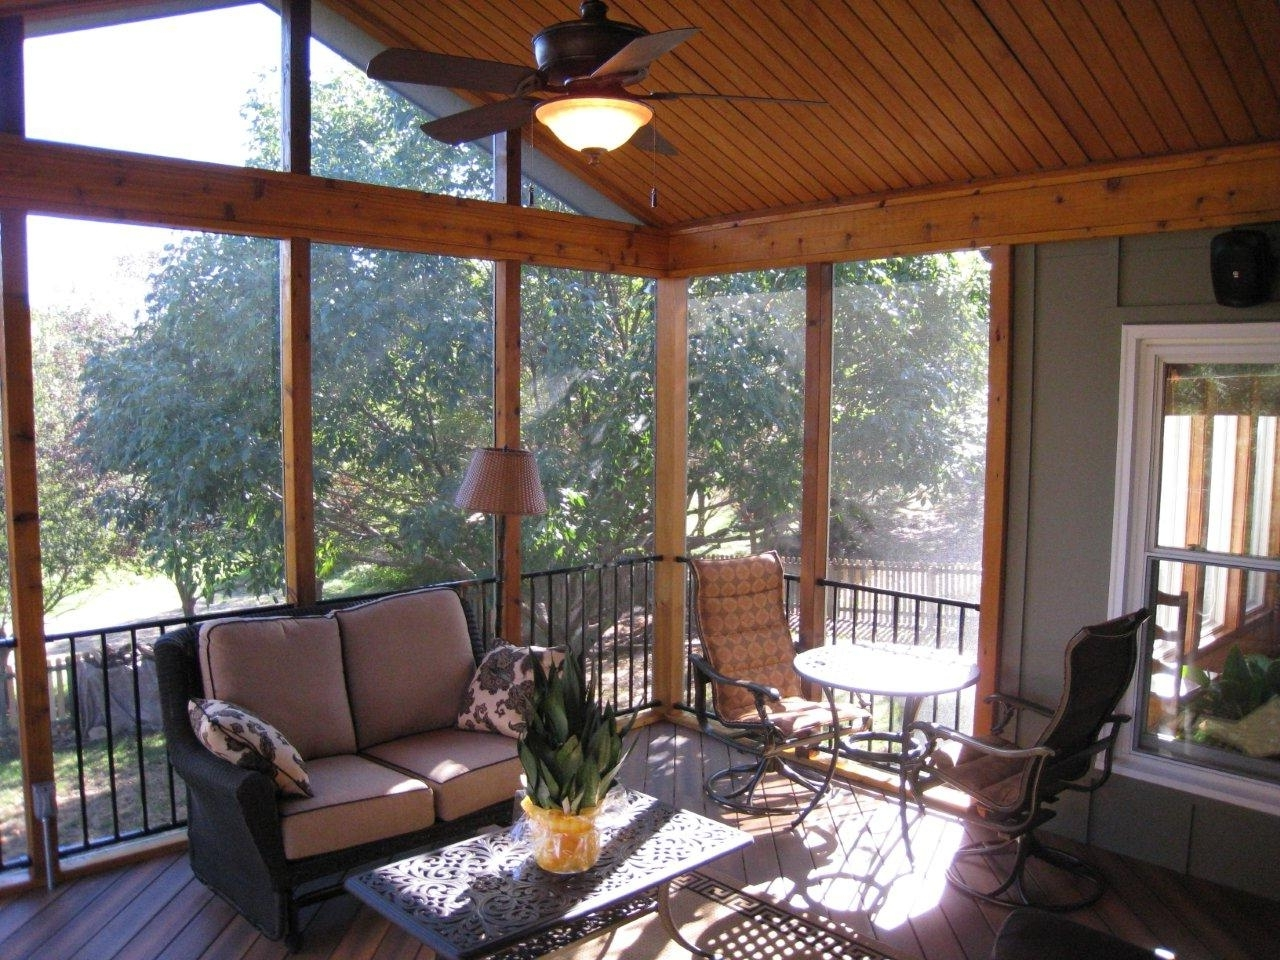 Low Profile Outdoor Ceiling Fans With Light In Farmhouse With Throughout Newest Outdoor Ceiling Fans For Porch (View 8 of 20)